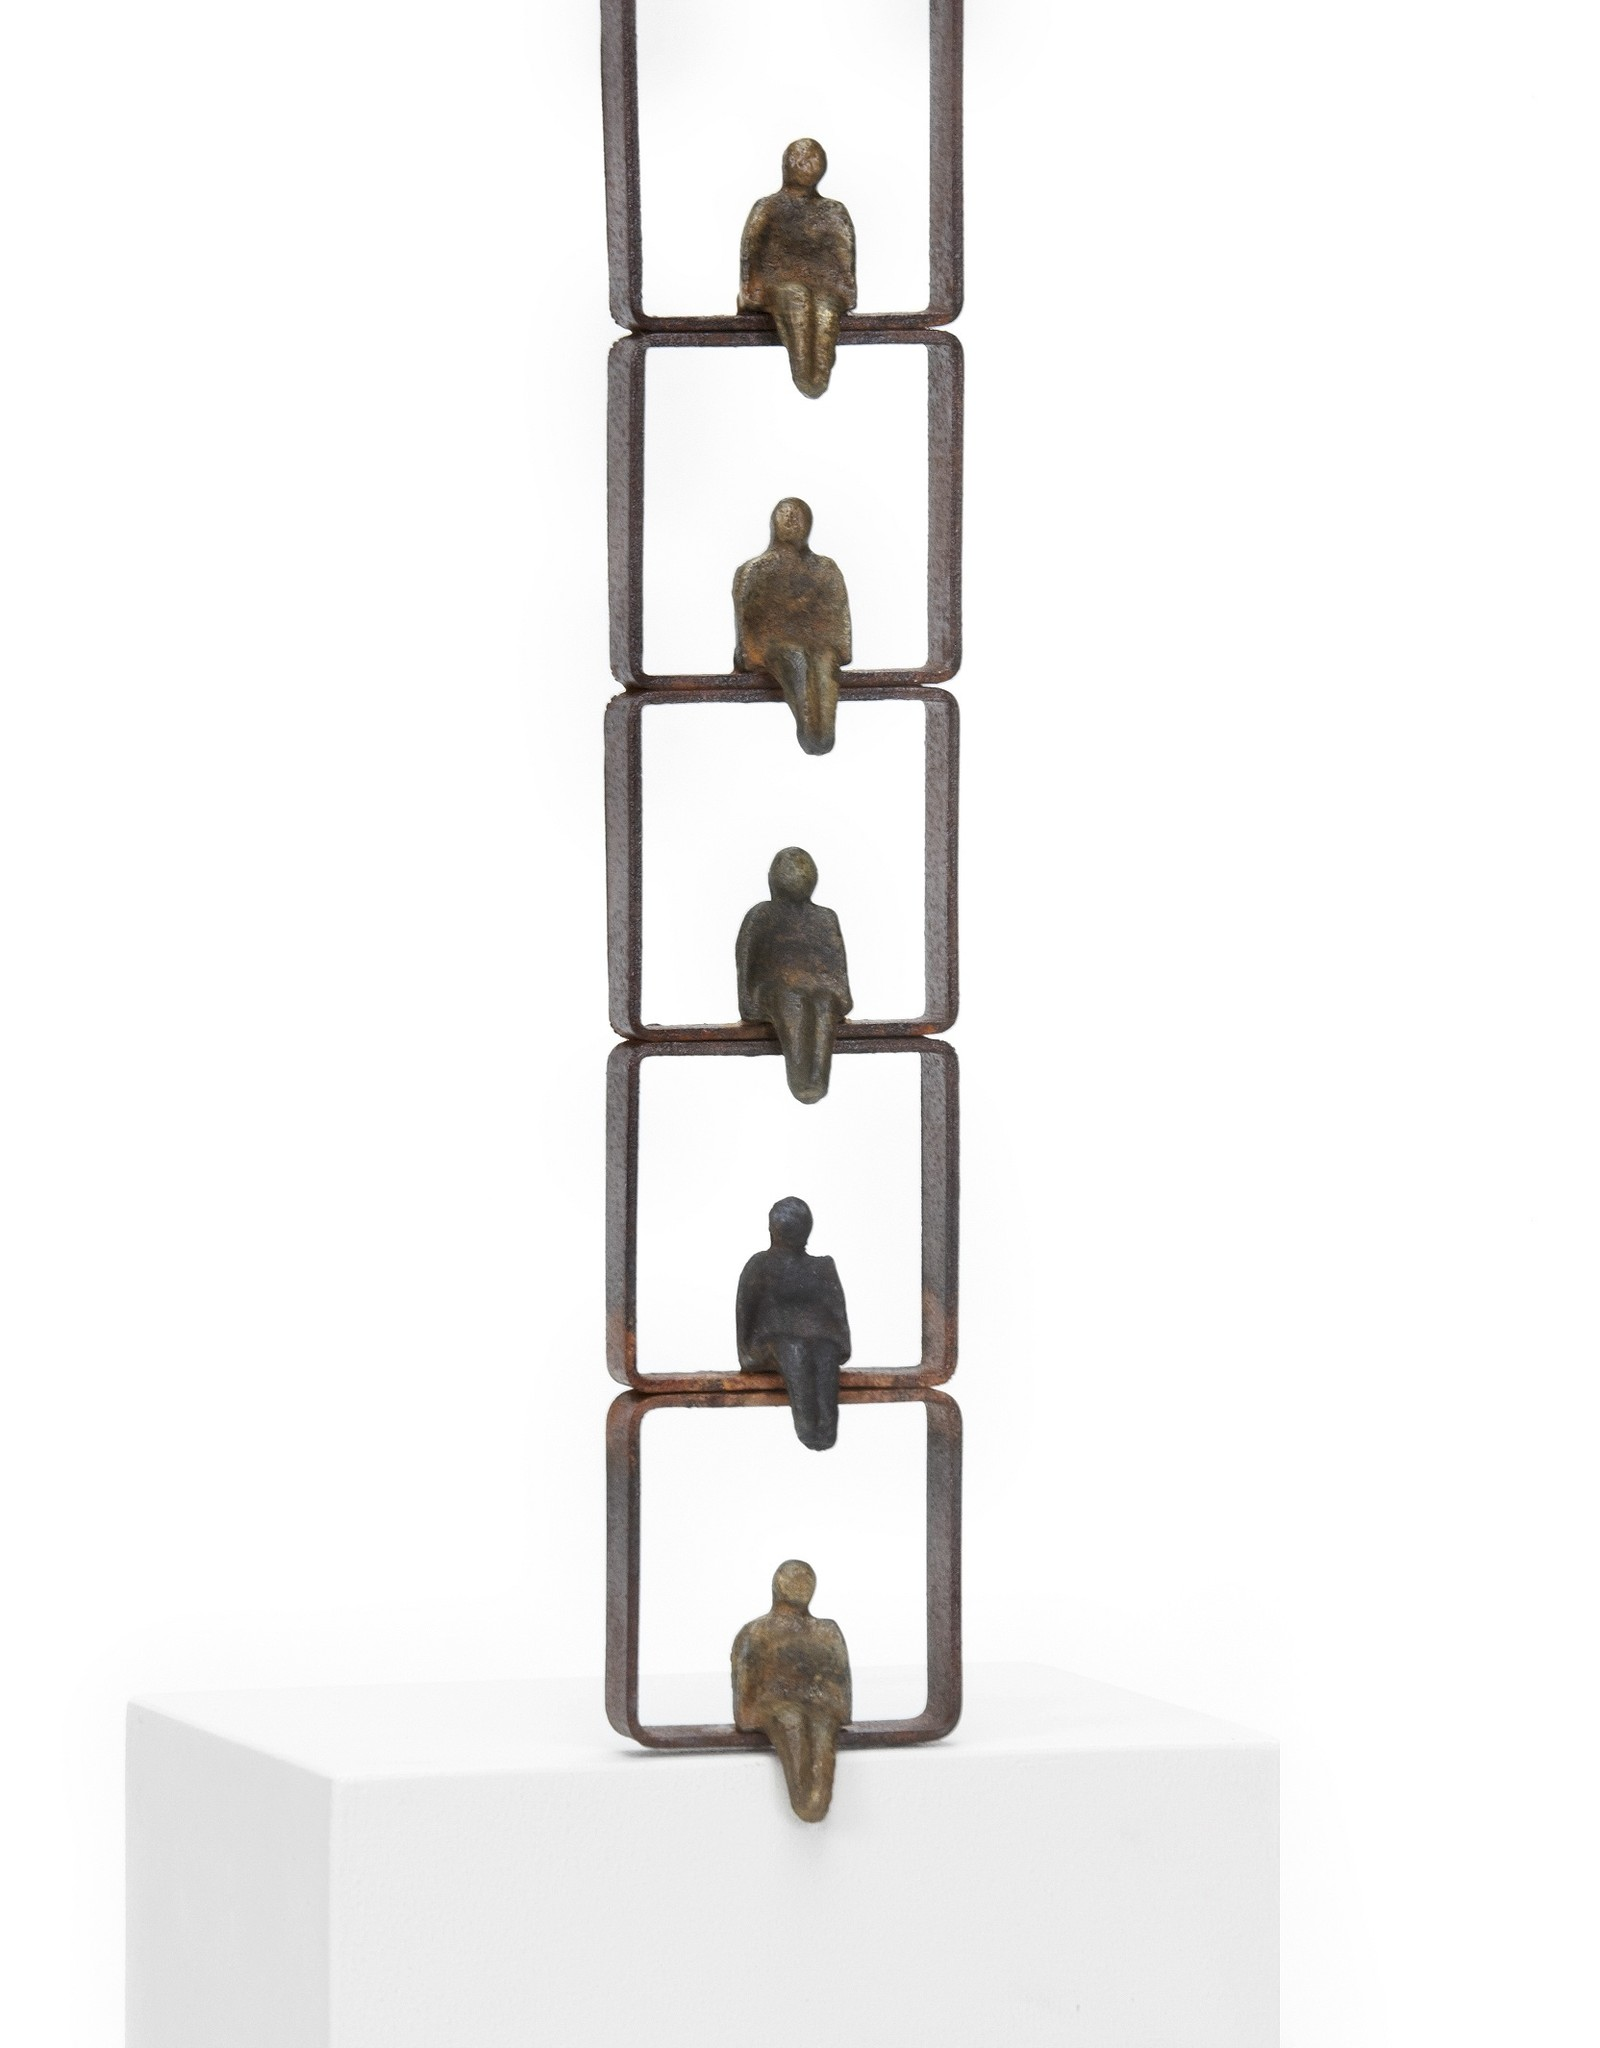 ERLI FANTINI THE WINDOW 40 - BRONZEN BEELD